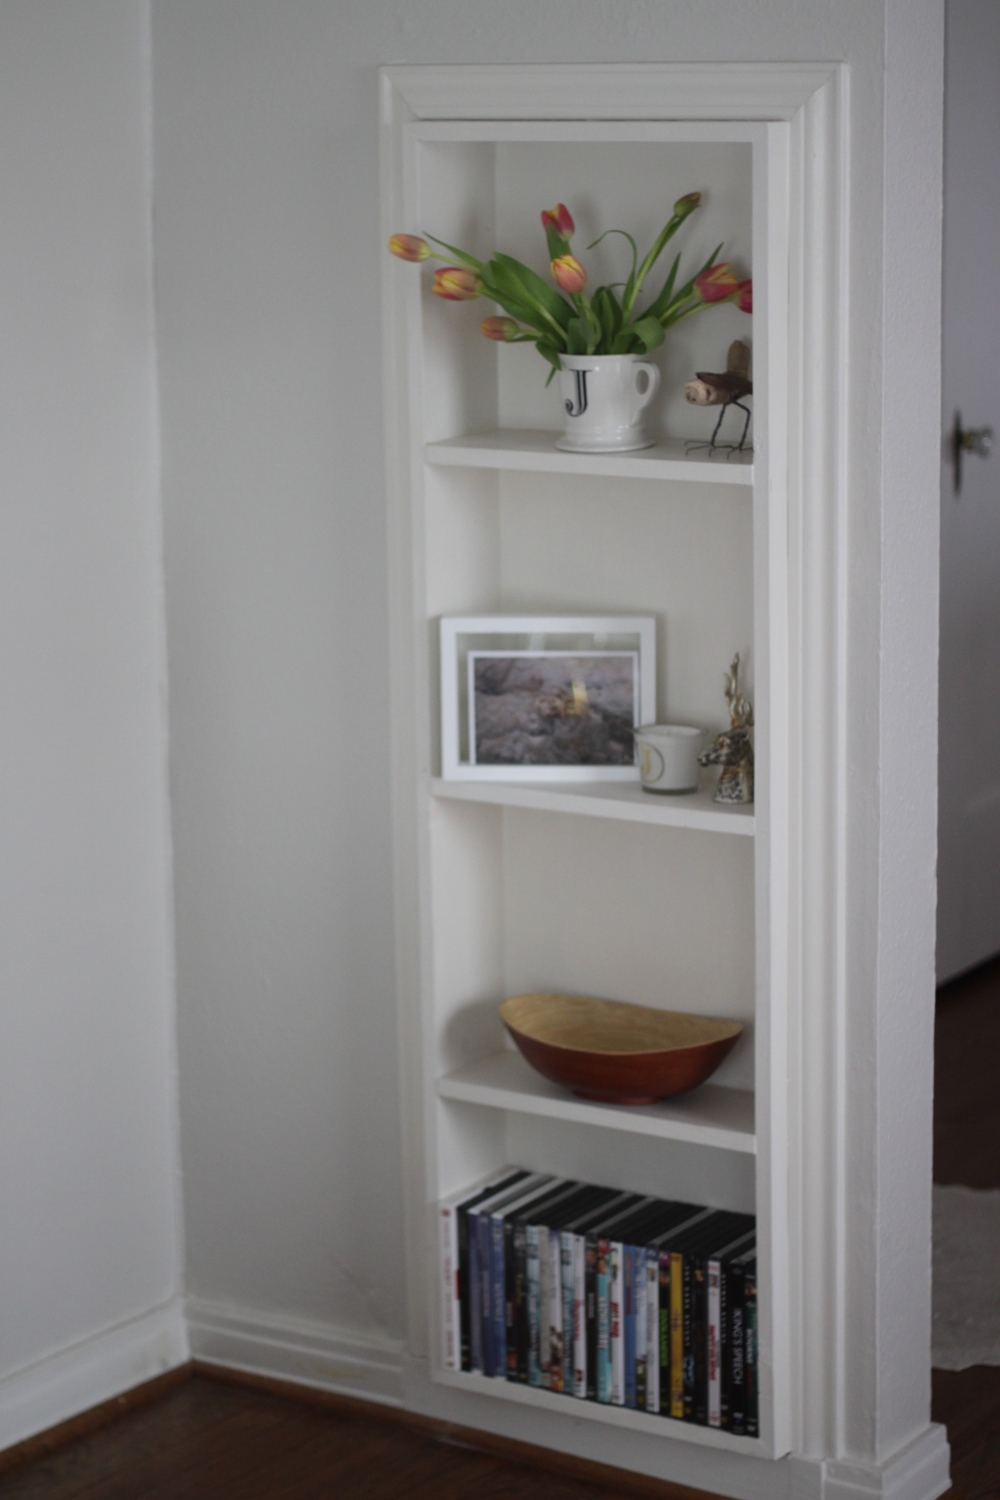 We love the built-ins this home has. Perfect for all of our knick knacks &fresh tulipsyour aunt gives you for a housewarming gift :)